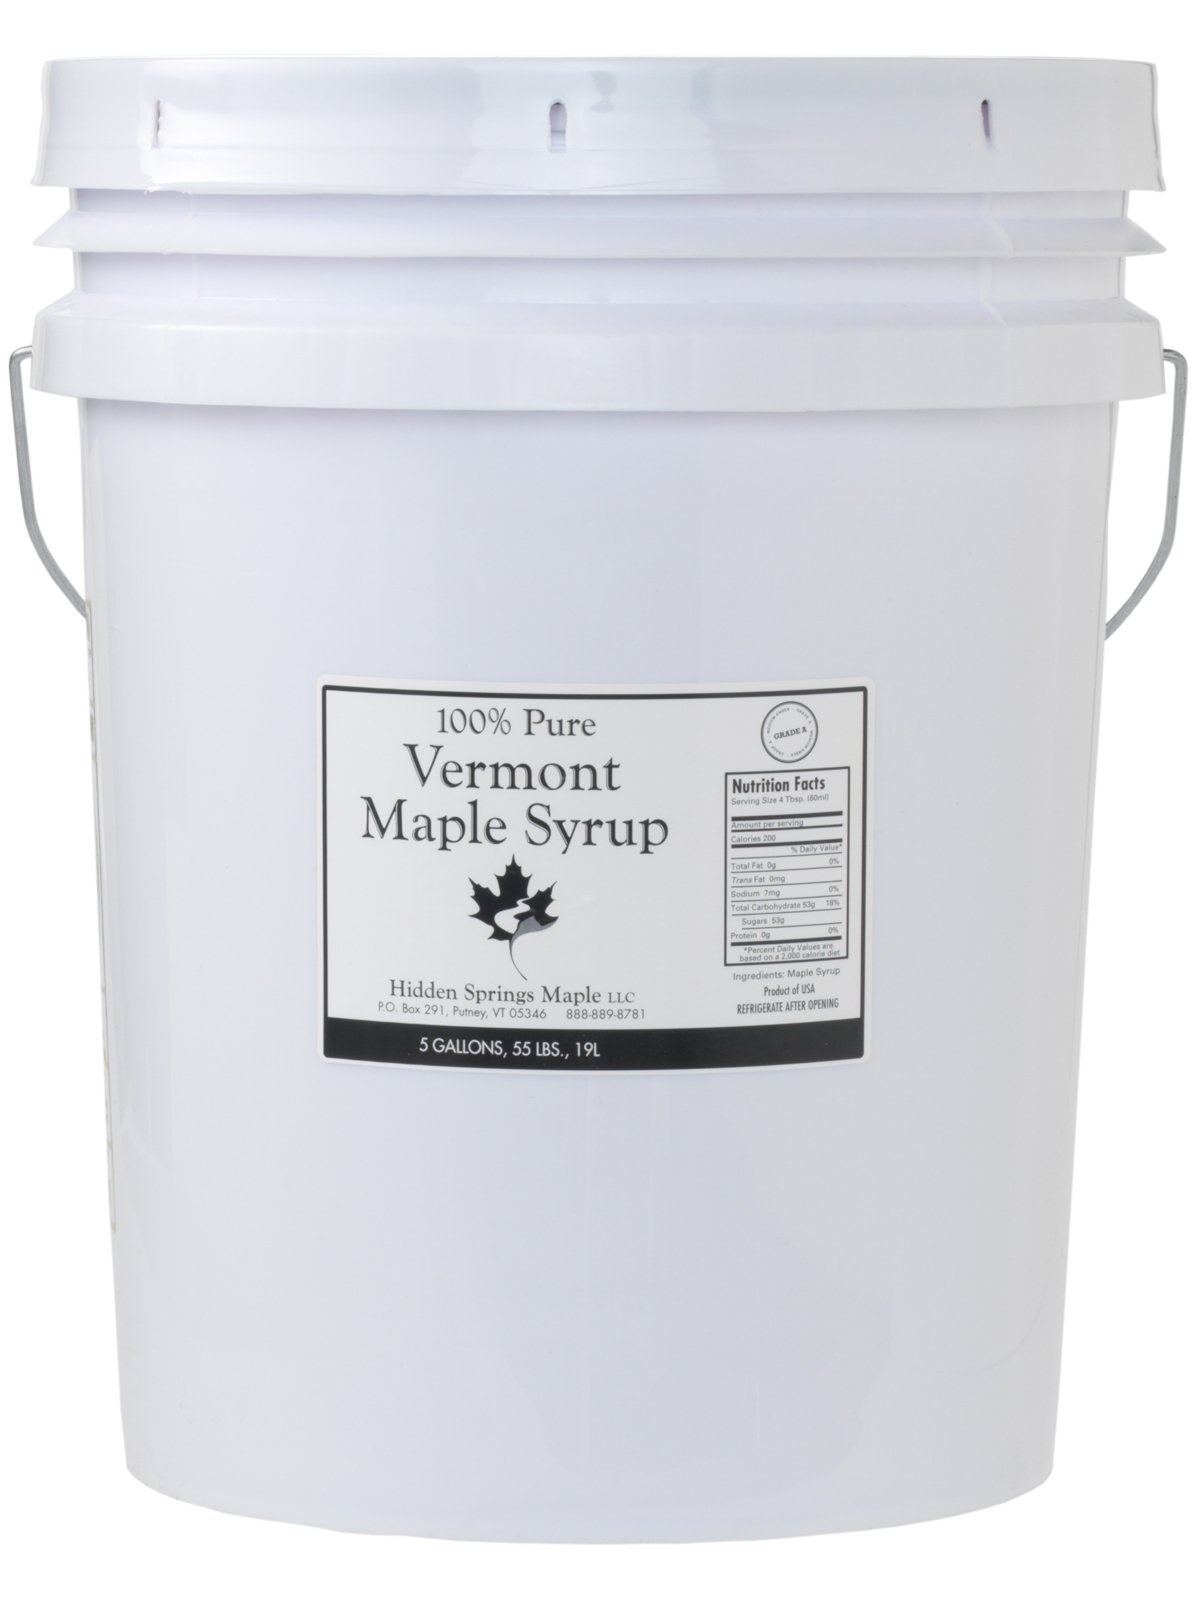 Hidden Springs Maple 5 Gallon Pail Maple Syrup, Amber Rich